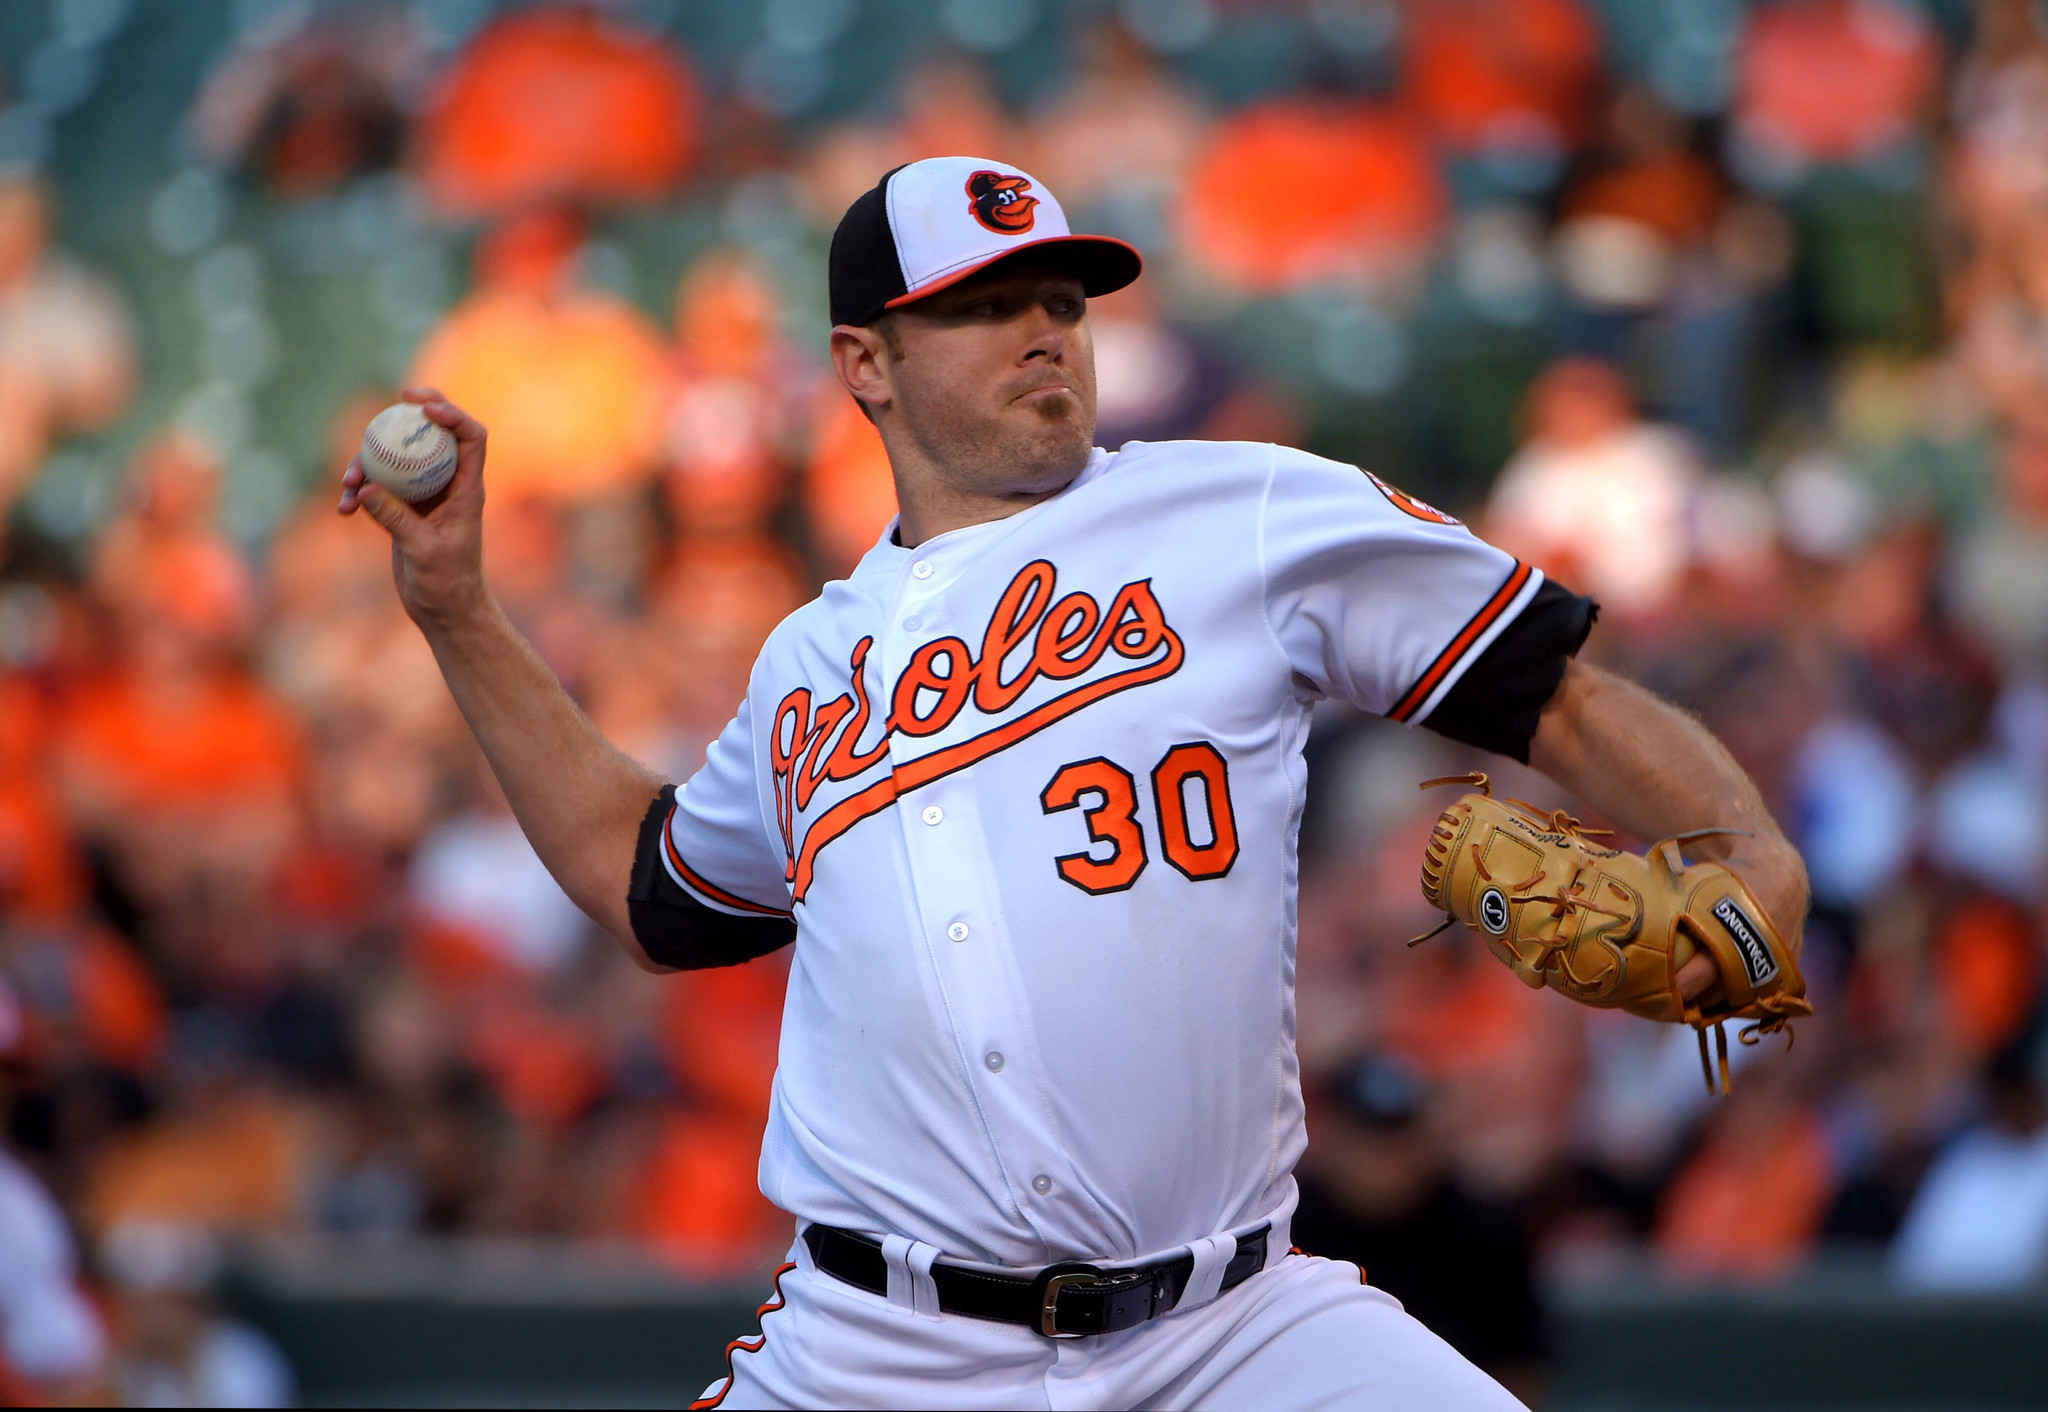 Bal-orioles-on-deck-what-to-watch-thursday-at-mariners-20160630